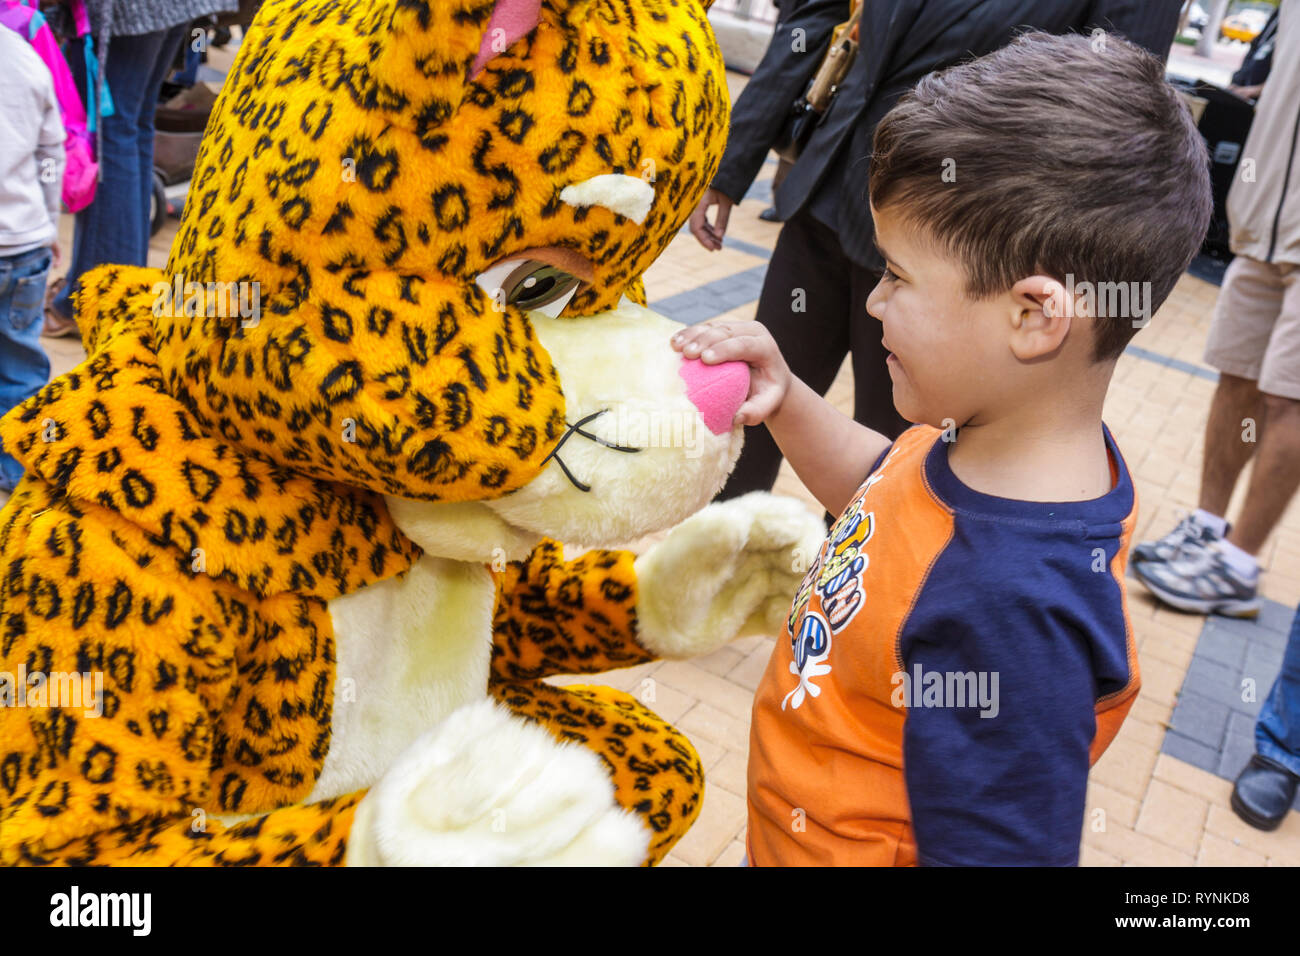 Miami Florida Adrienne Arsht Center for Performing Arts Free Family Fest festival literary character leopard costume boy child i - Stock Image